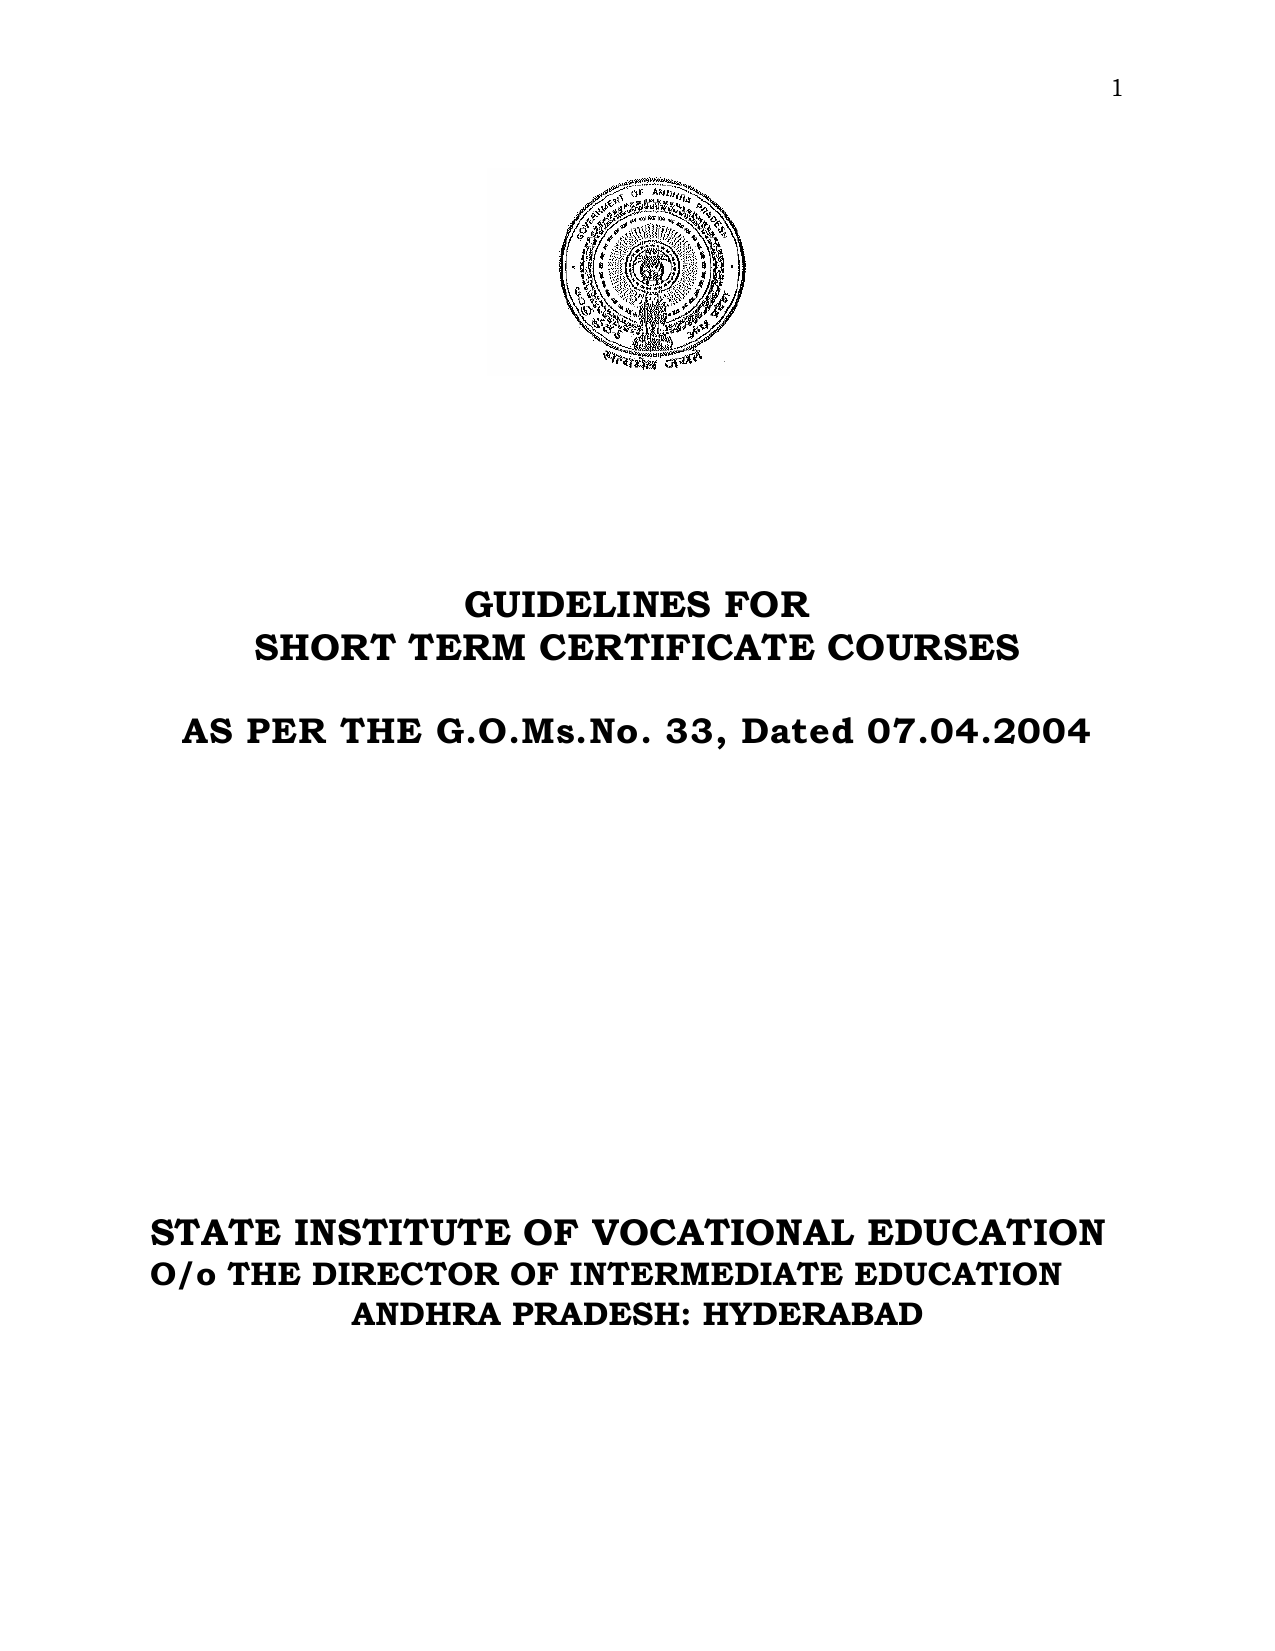 Guidelines For Short Term Certificate Courses State Institute Of